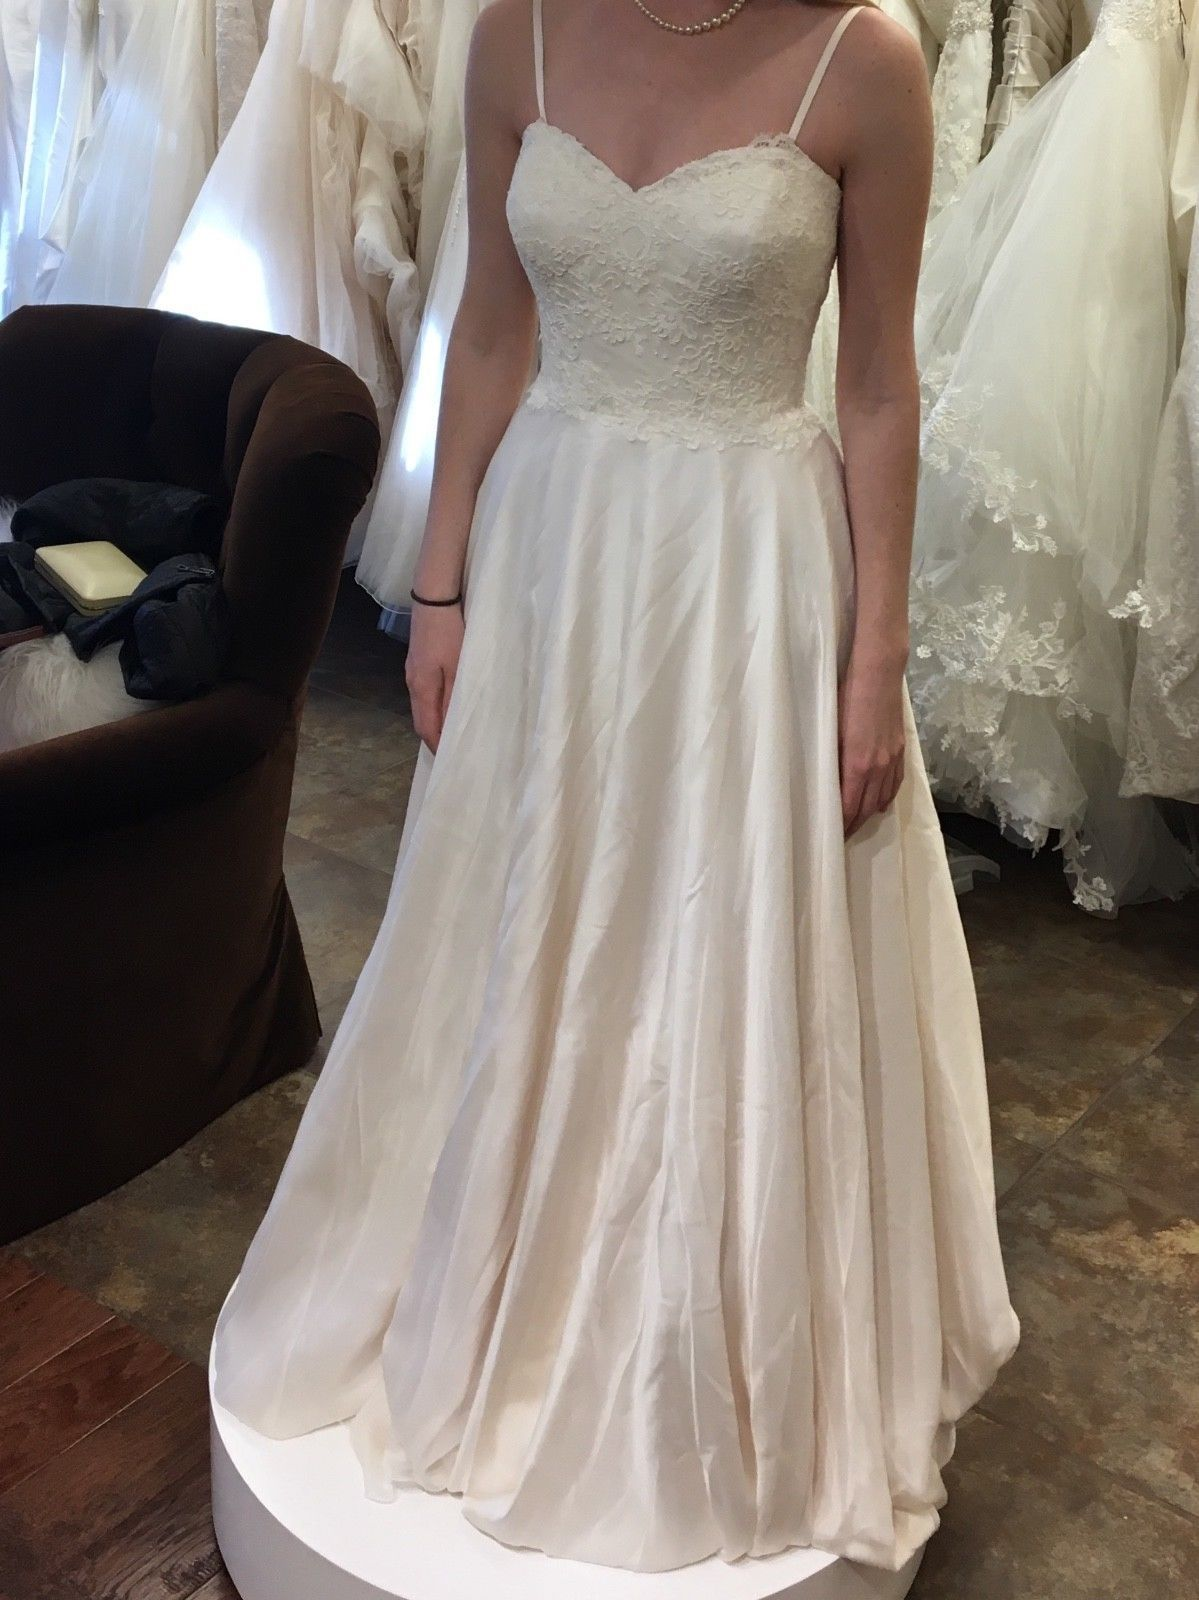 Size 6 wedding dress  Justin Alexander wedding dress New  Size   Wedding dress